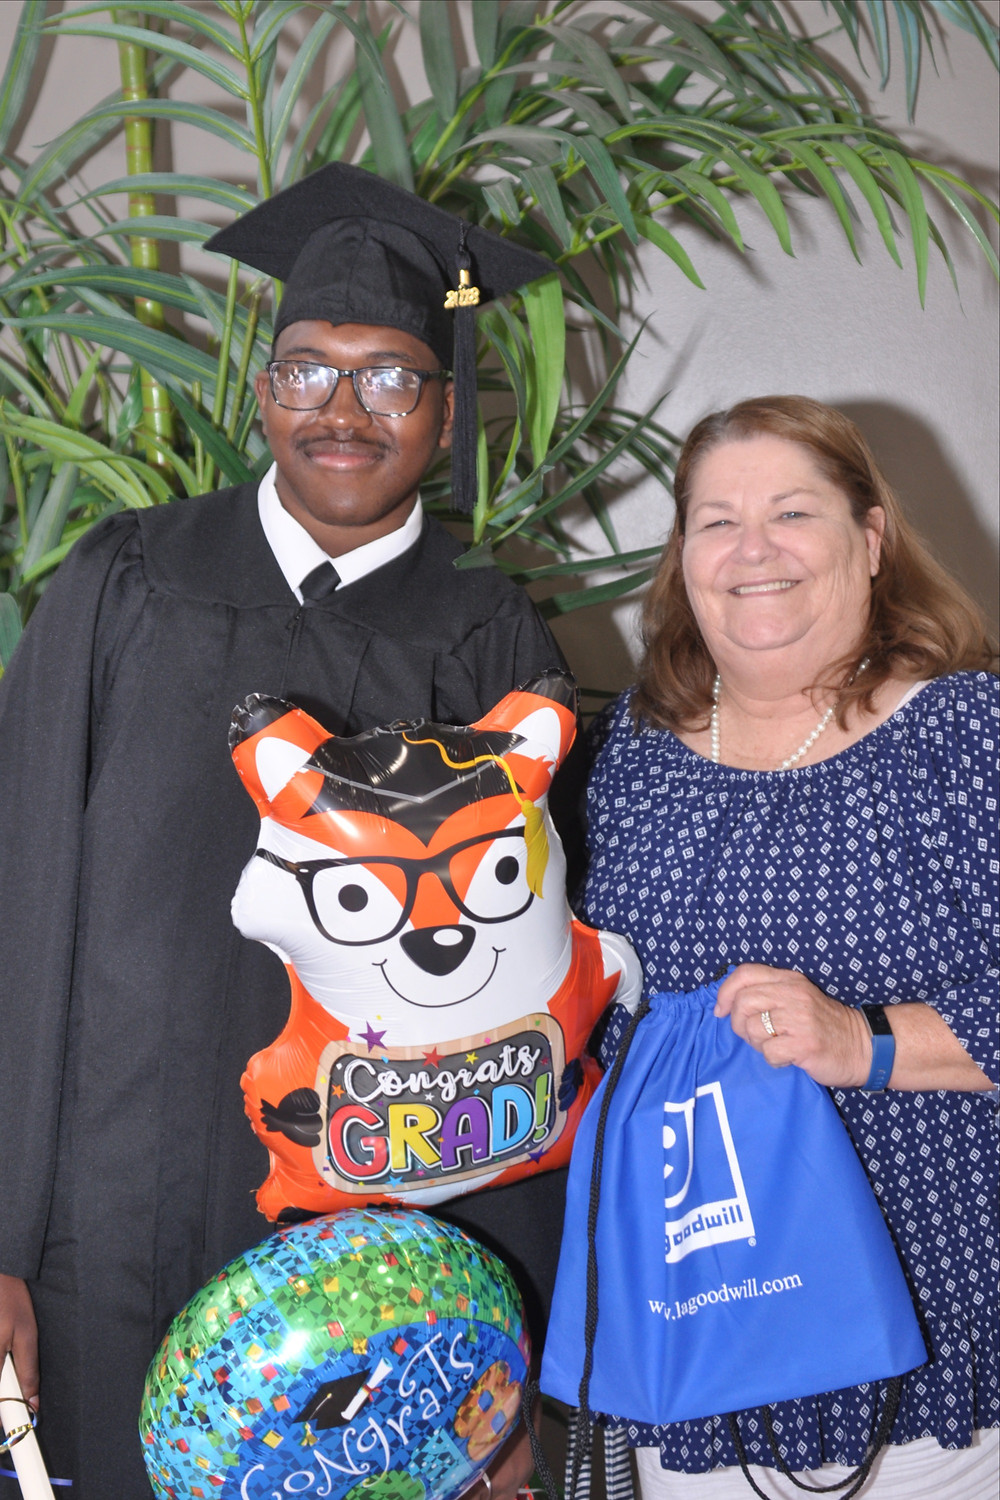 Instructor Susan Dollison poses with HiSET graduate Kendrick Francis and his graduation balloons